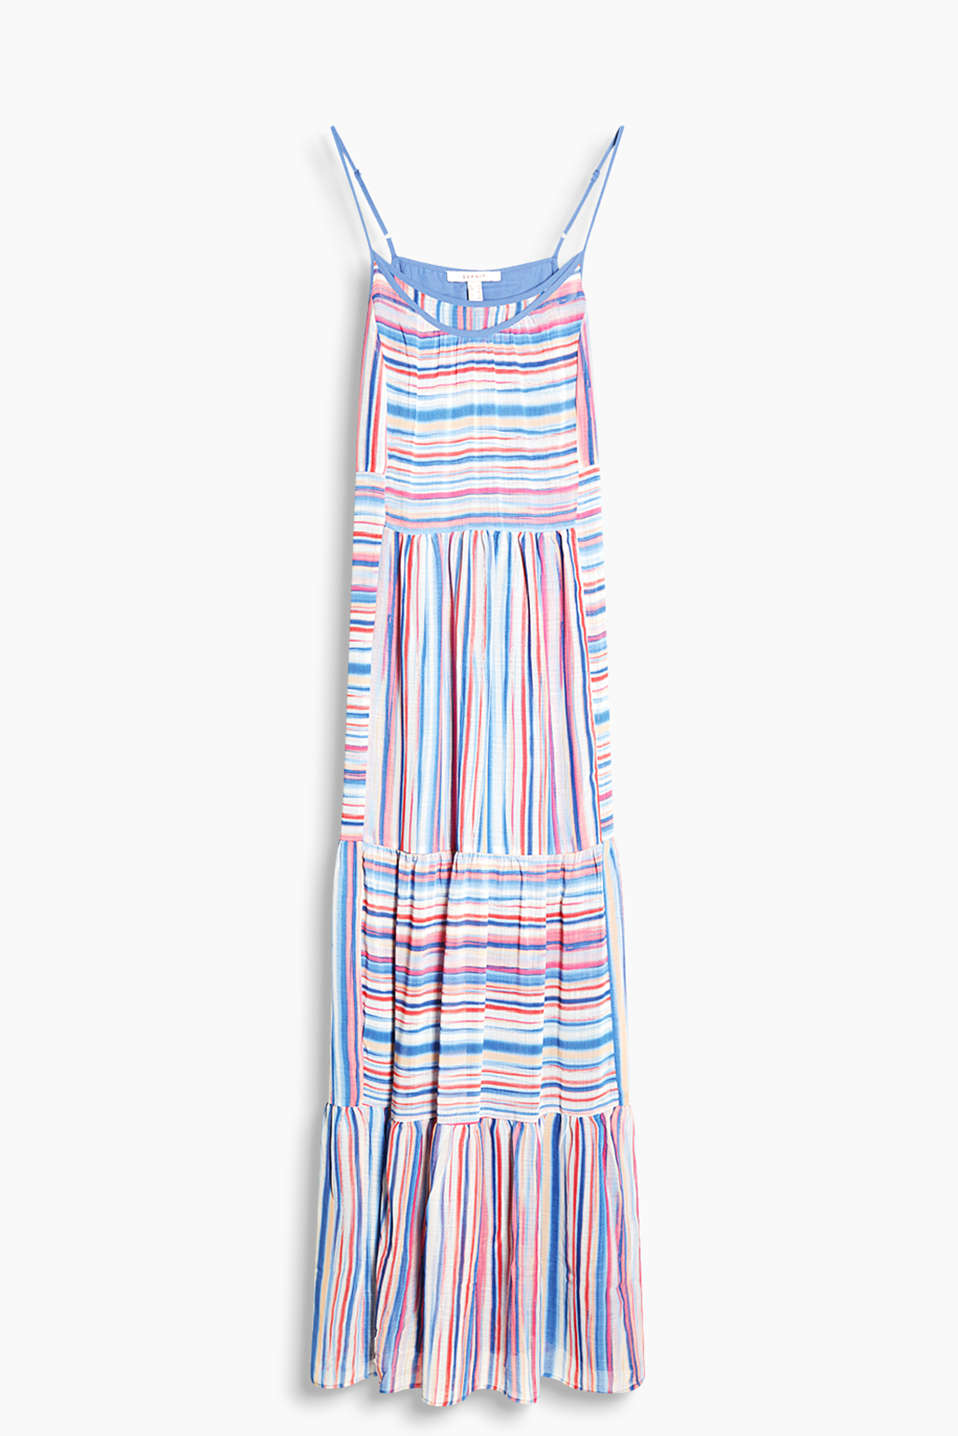 Maxi dress with multi-coloured stripes and a wide tiered skirt made of delicate chiffon